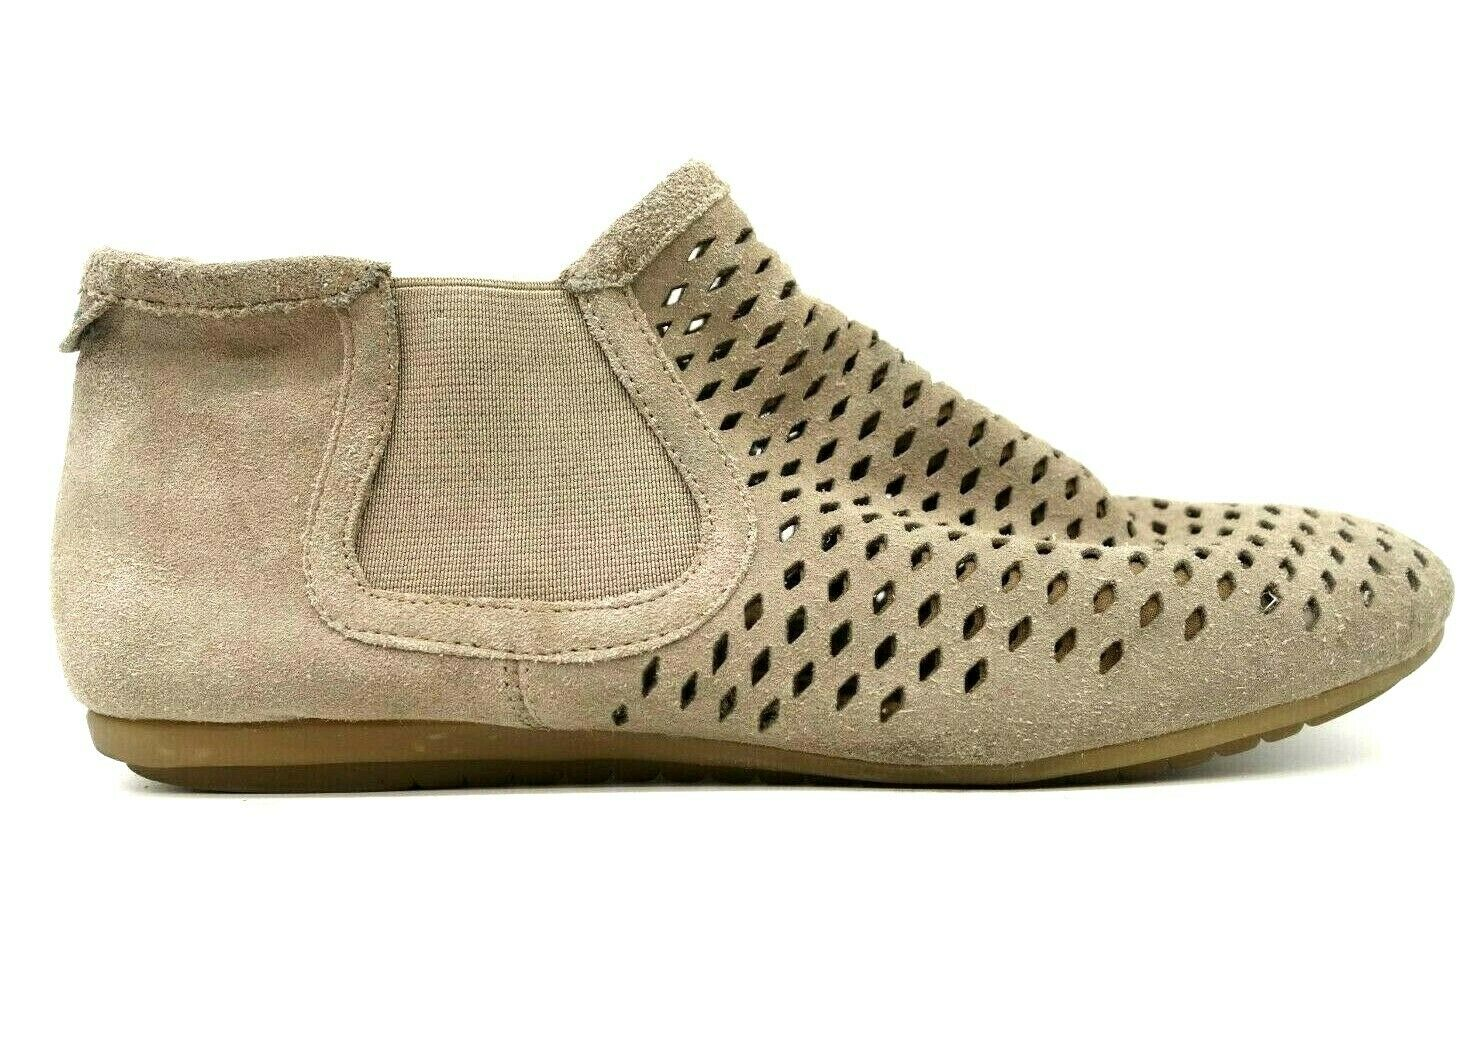 Cobb Hill New Balance Taupe Leather Perforated Chelsea Ankle Boots Women's 7.5 M